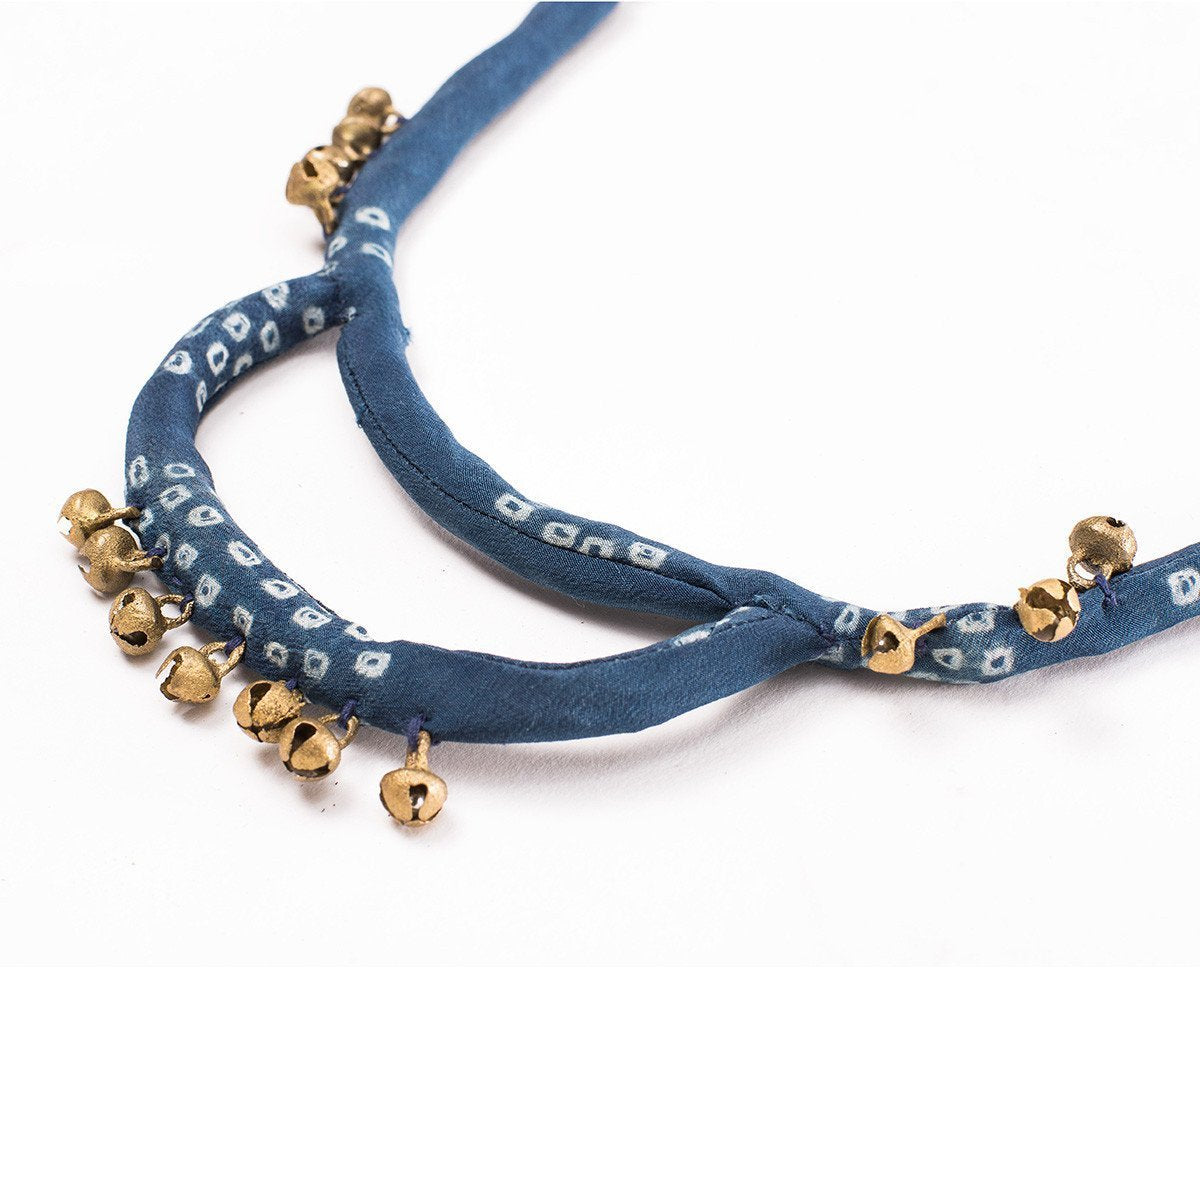 Engraved gold bell charms attached to an indigo silk dyed necklace